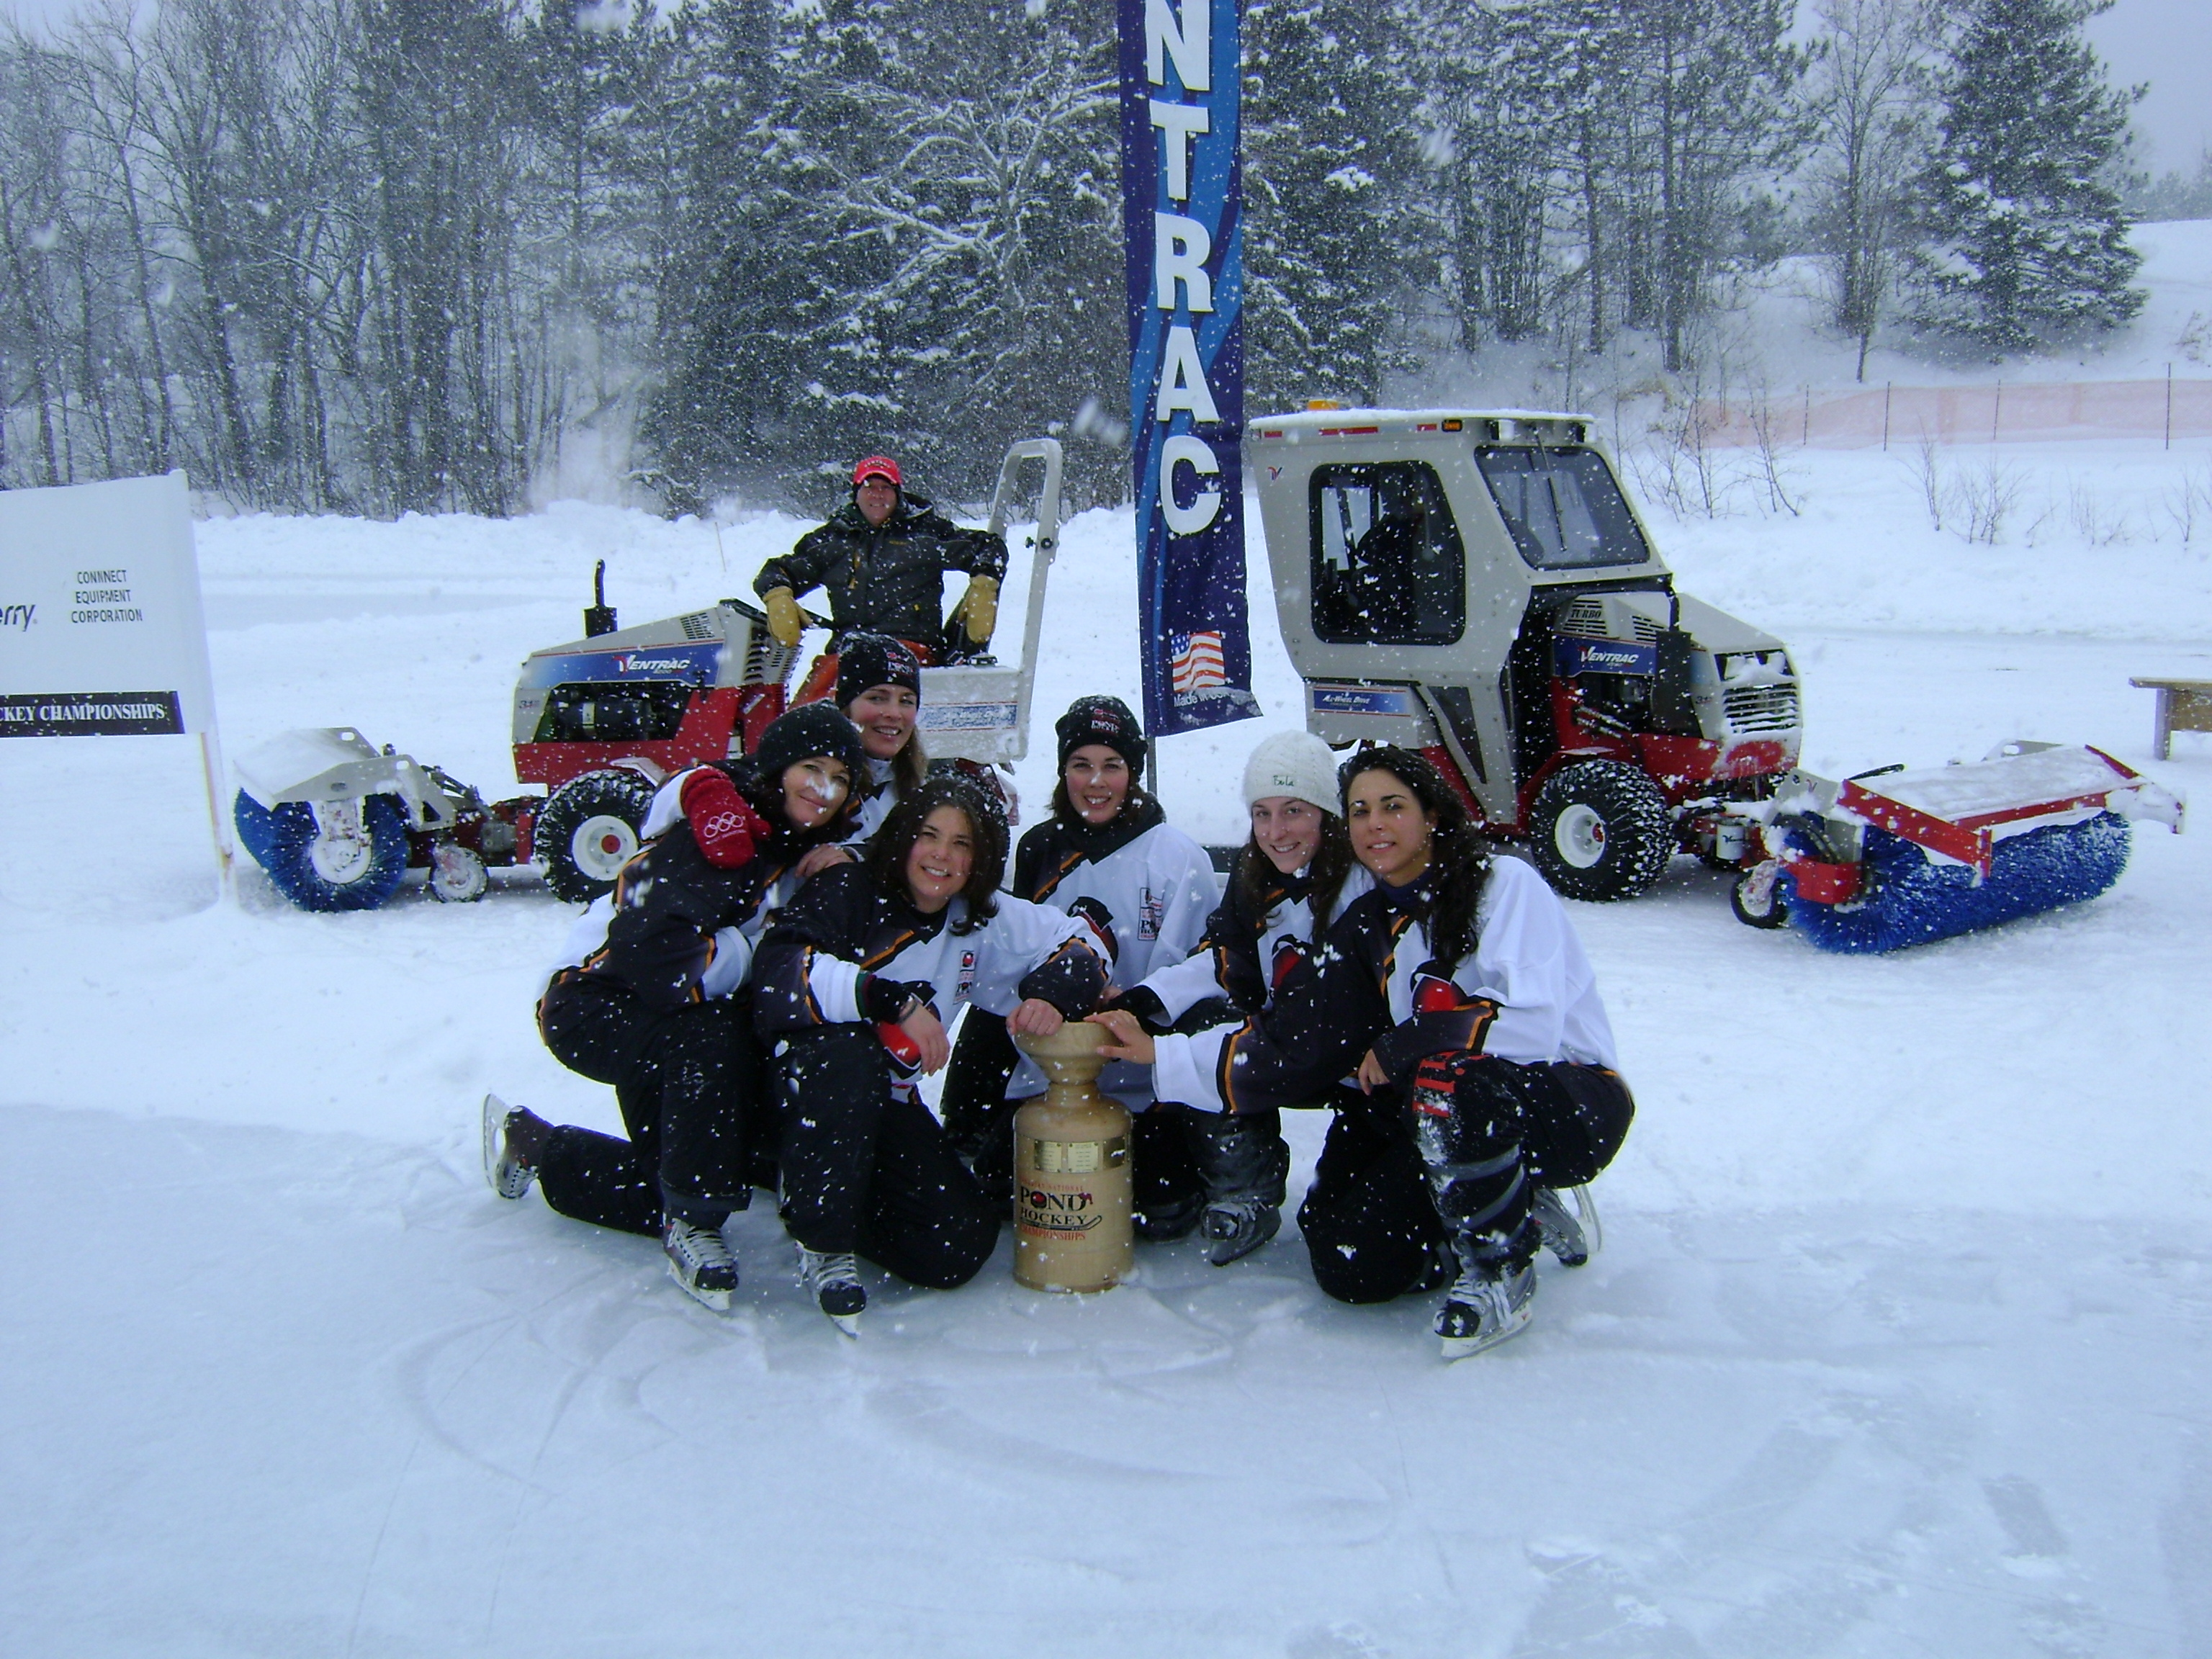 Ventrac at Deerhurst Resort